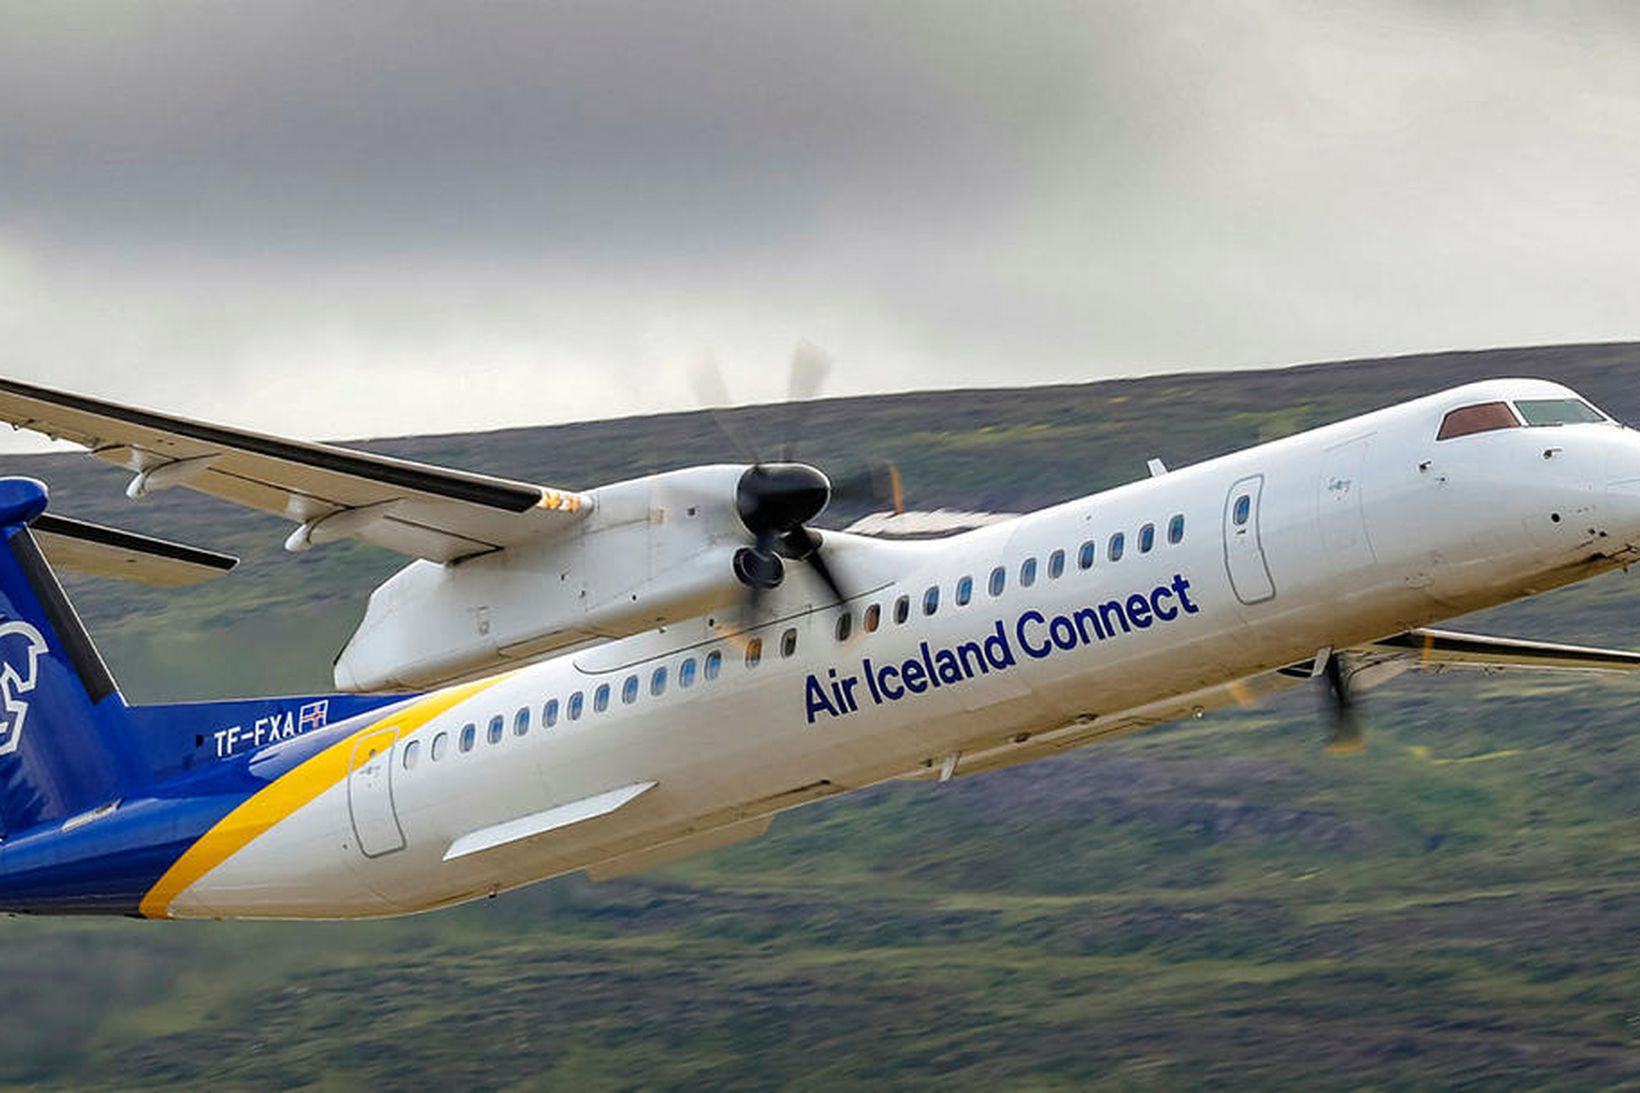 Air Iceland Connect.